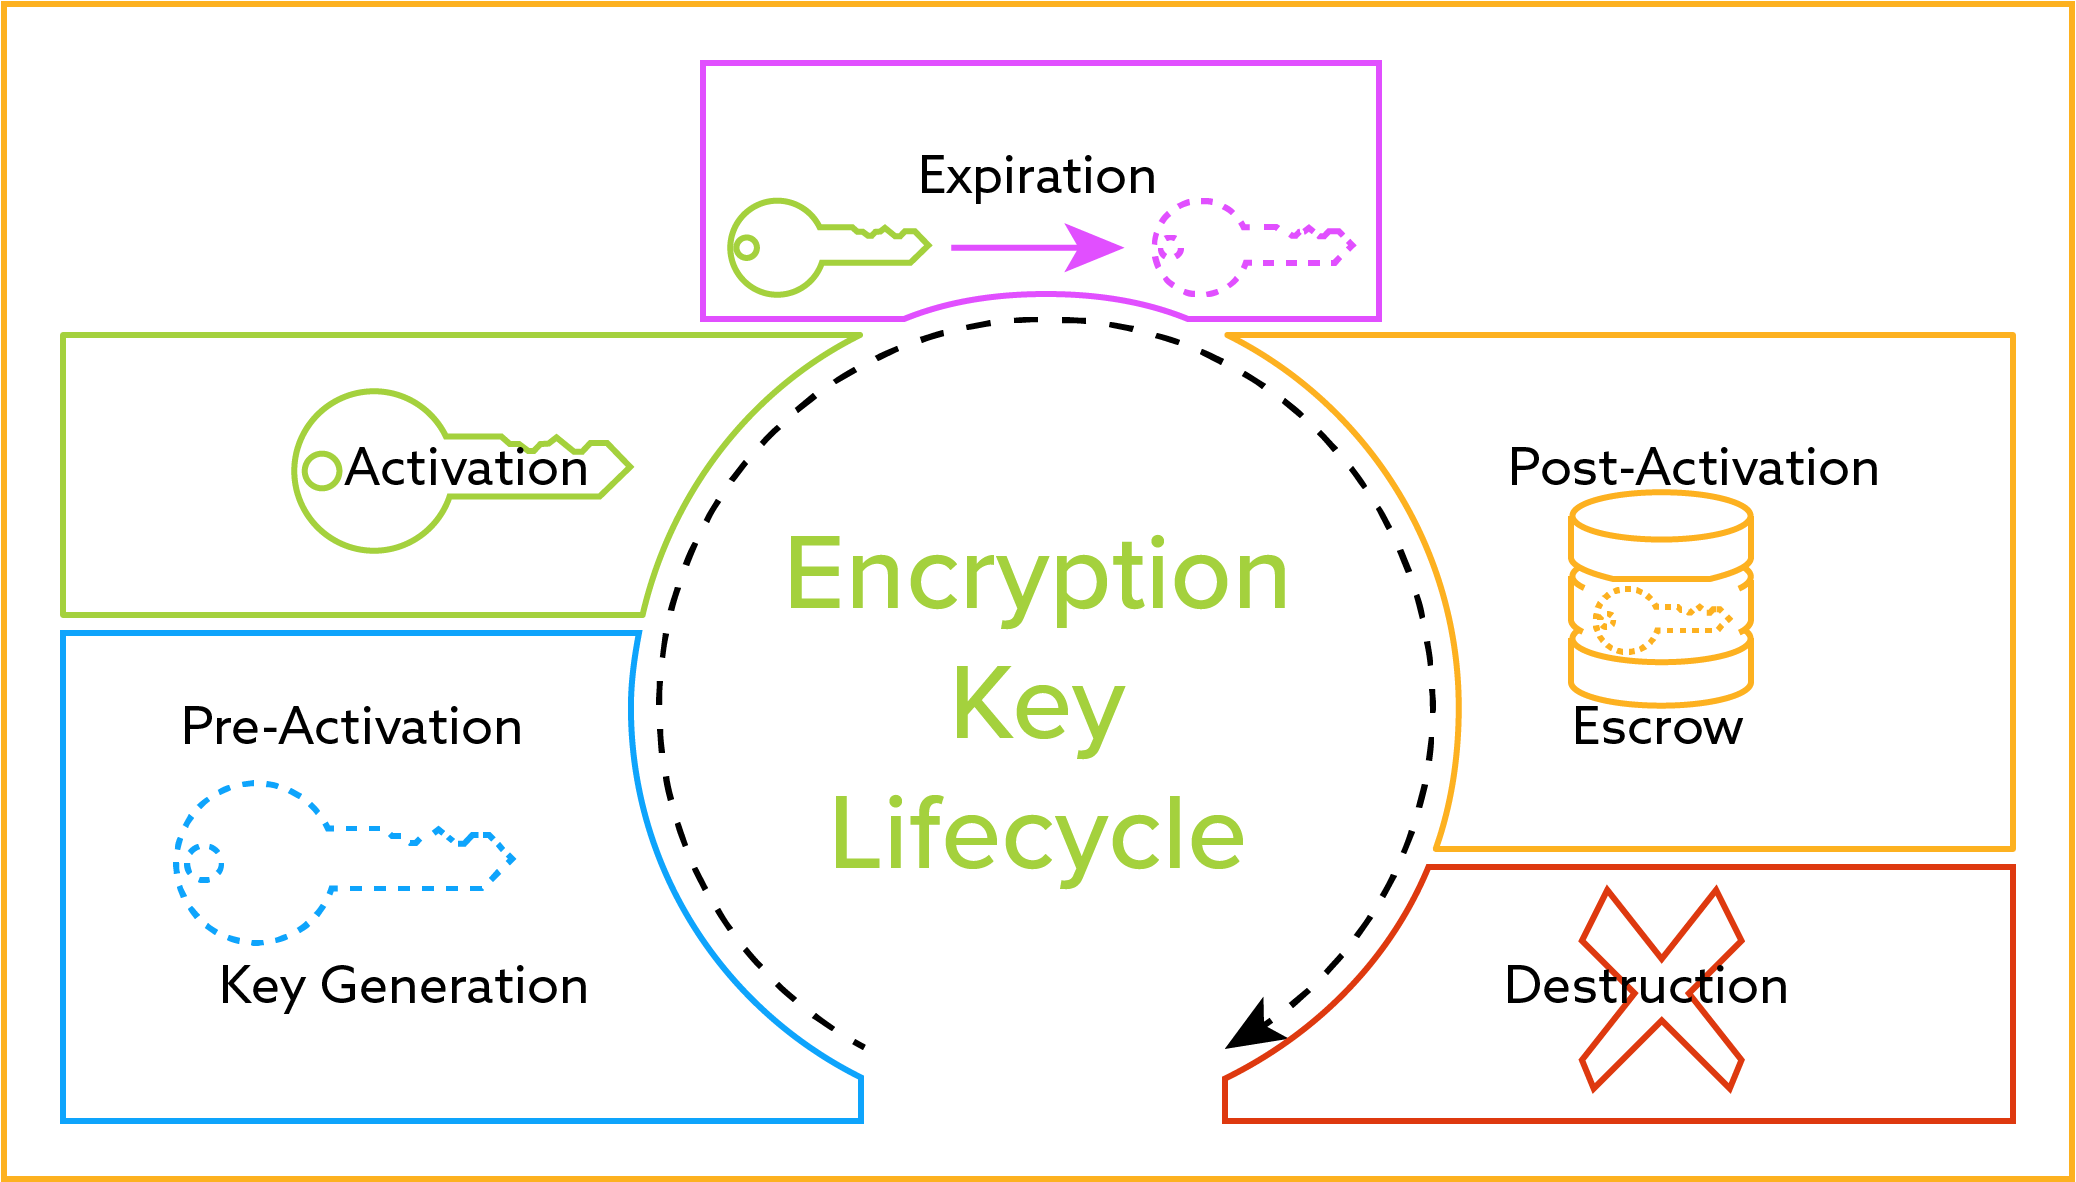 Encryption Key Management Lifecycle Diagram